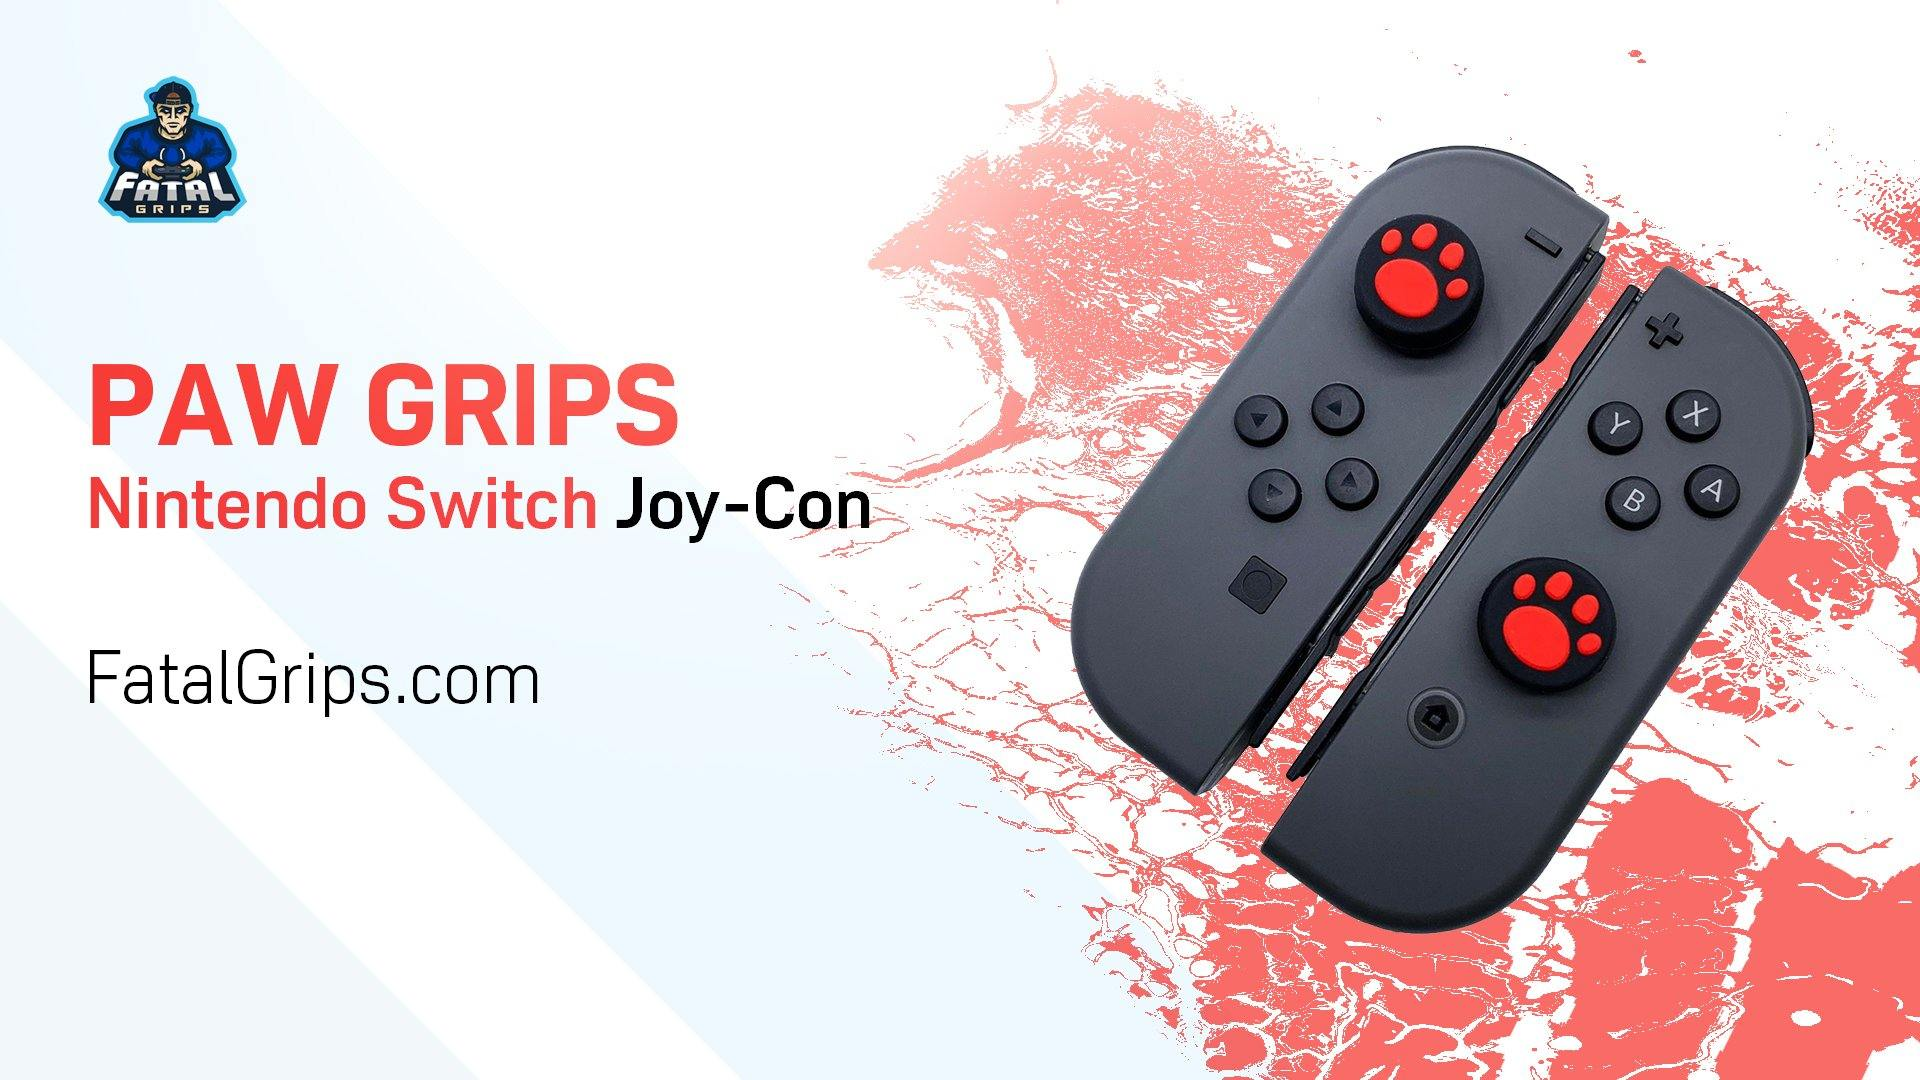 Paw Grips - Nintendo Switch Joy-Con Controller - Fatal Grips